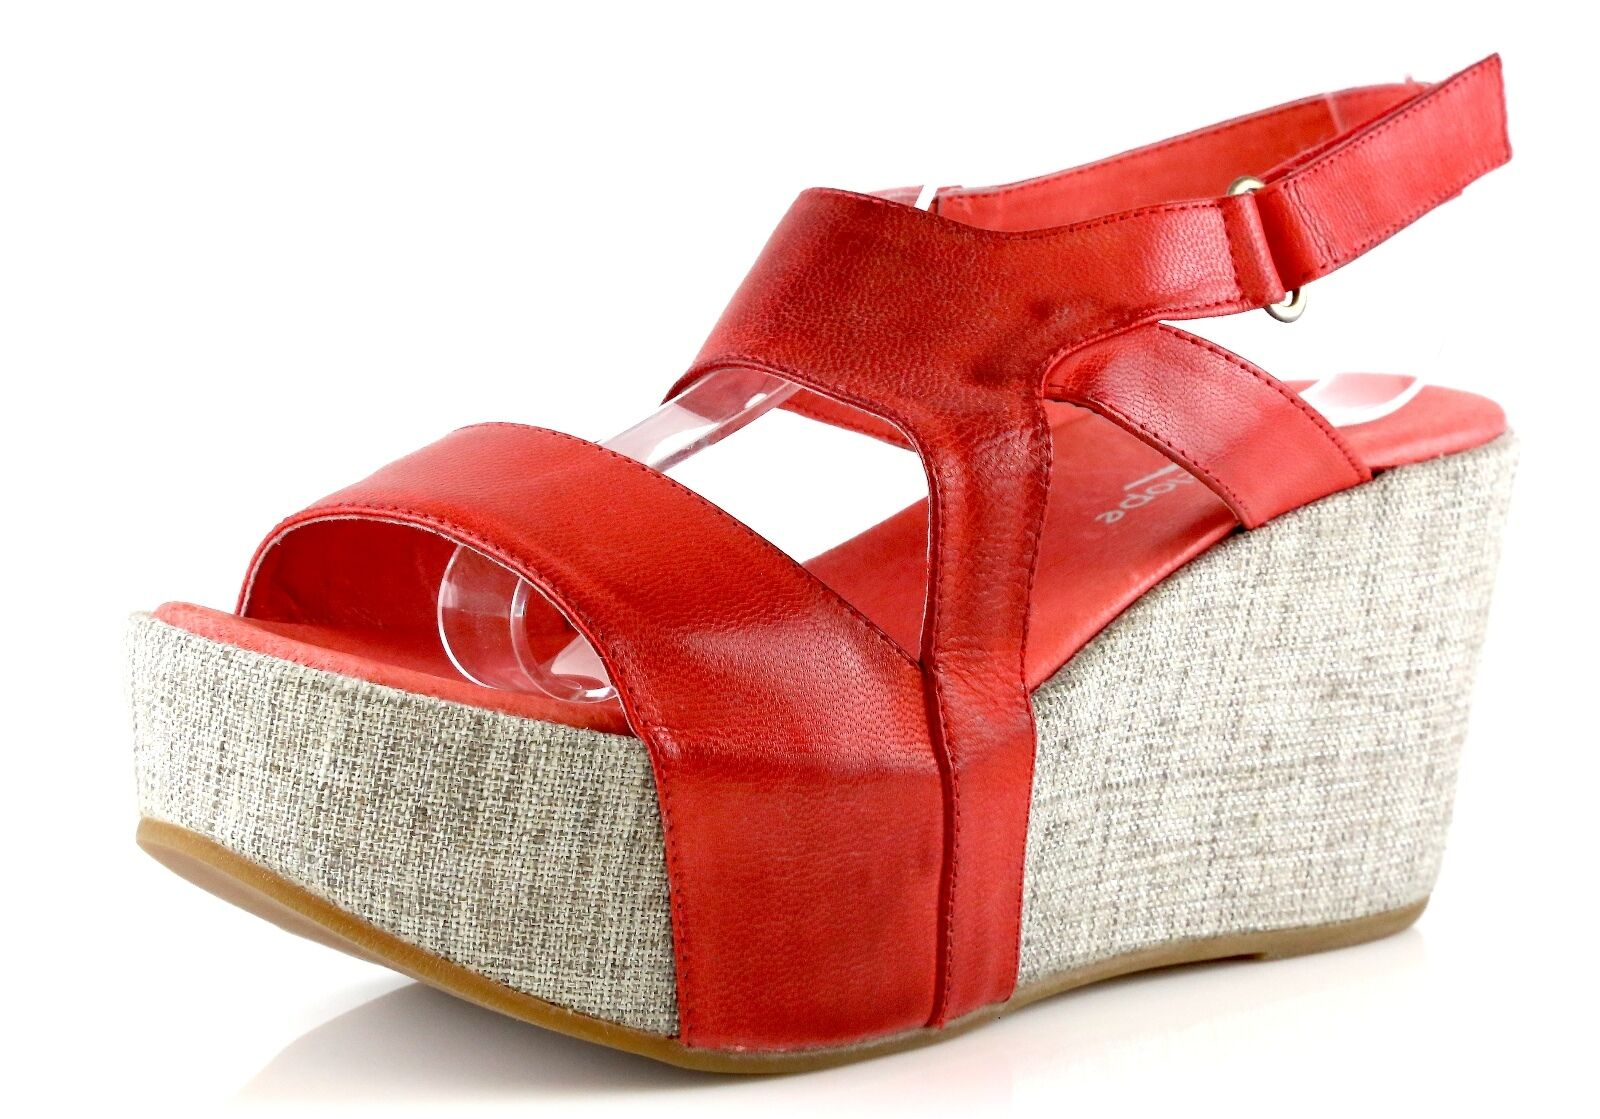 Antelope 857 rouge Leather Ankle Strap Wedge Sandals 7048 Taille 41 EU NEW